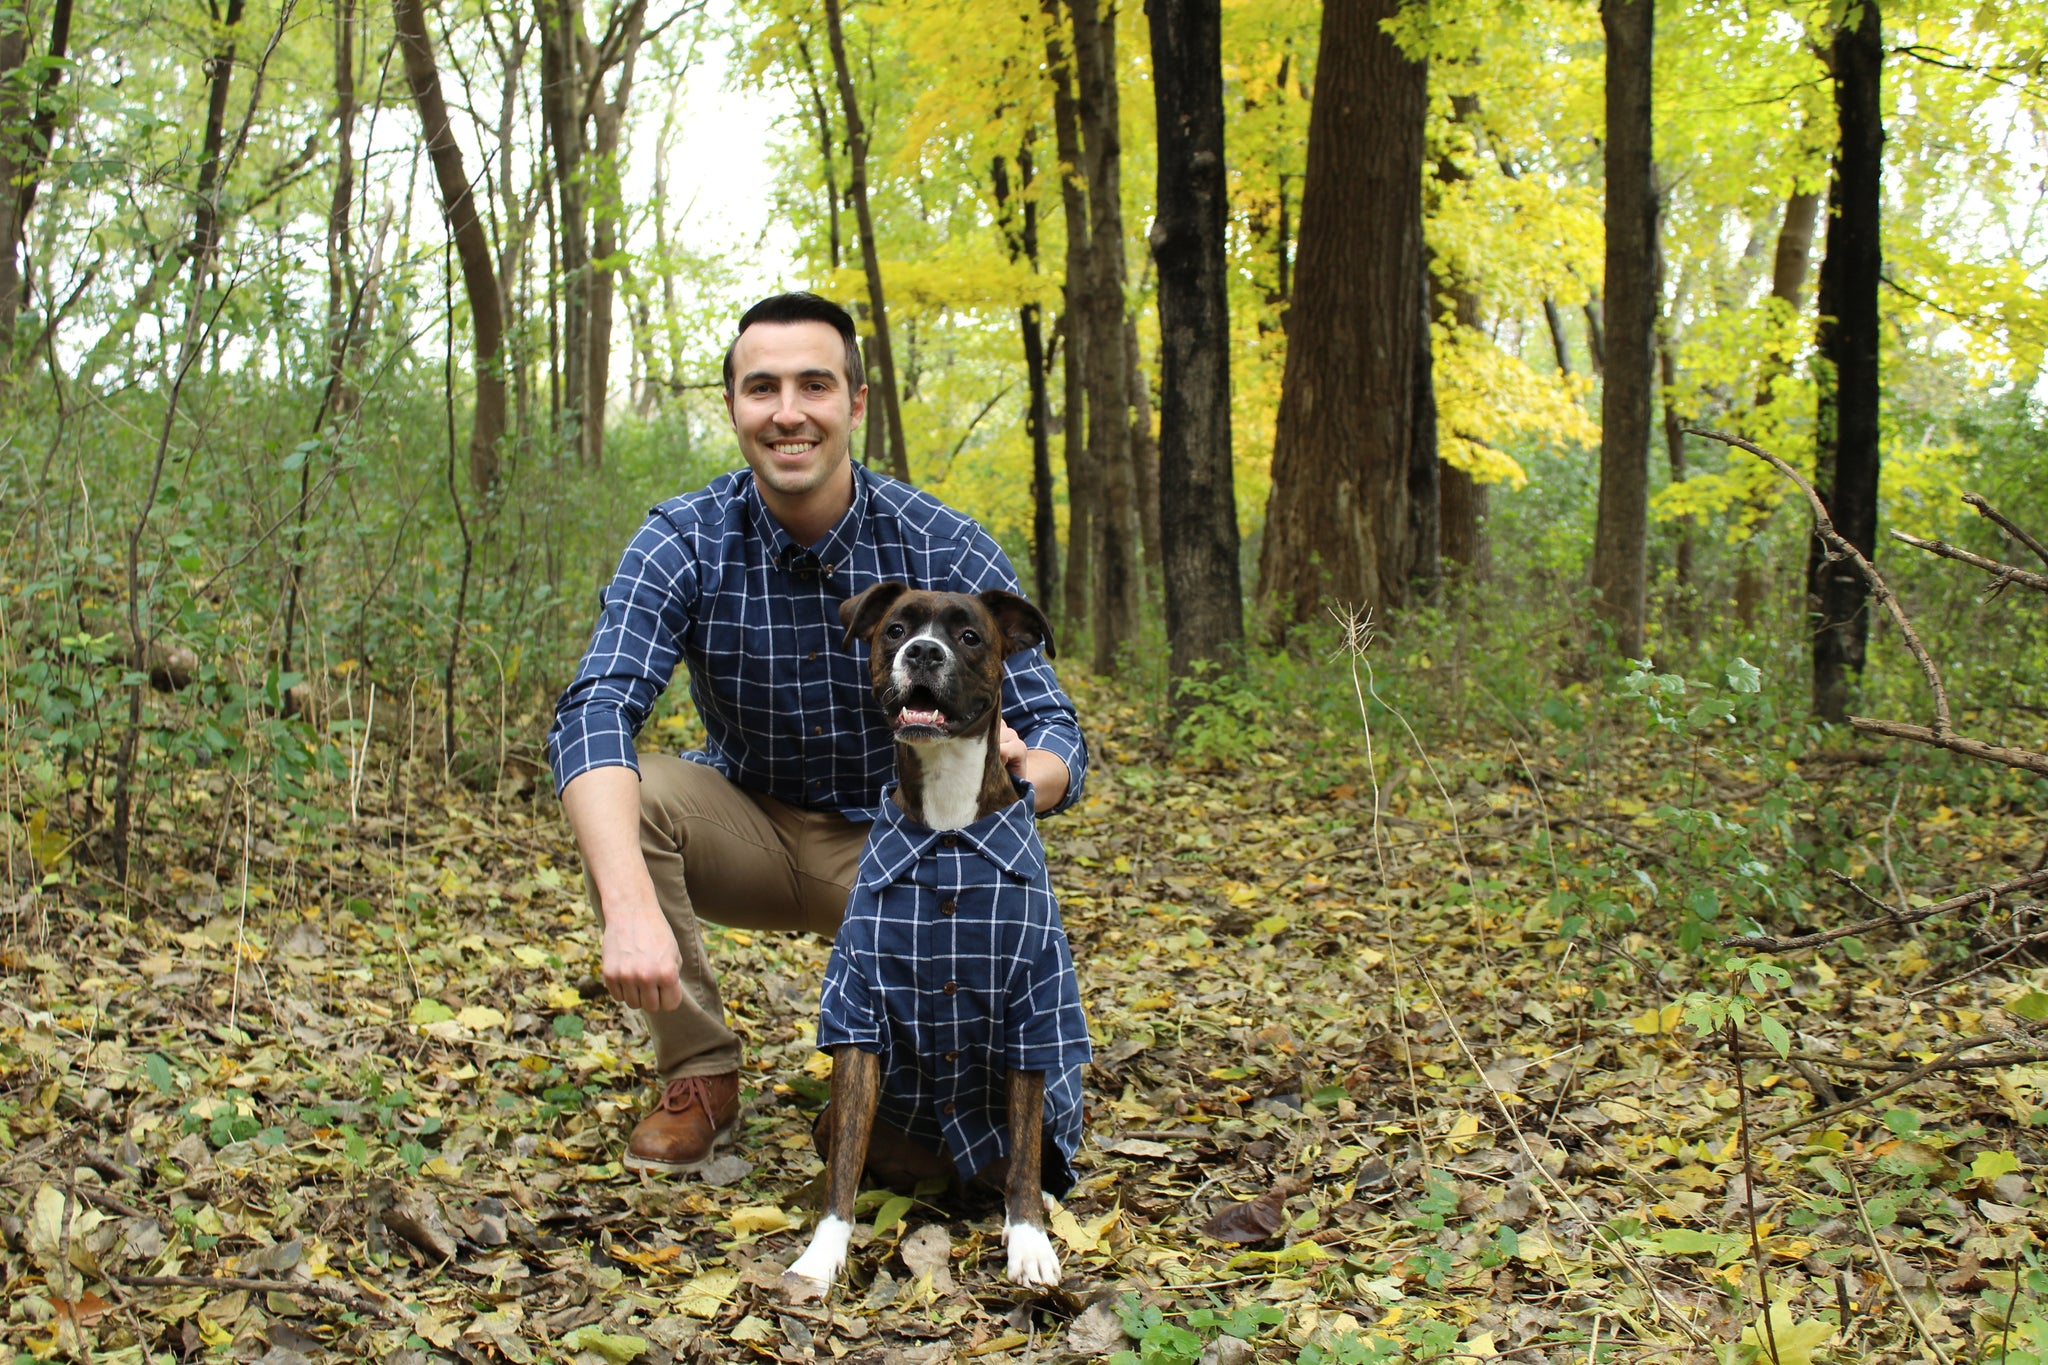 Matching Outfits for Thanksgiving | Matching Flannels for the Dog Loving Family